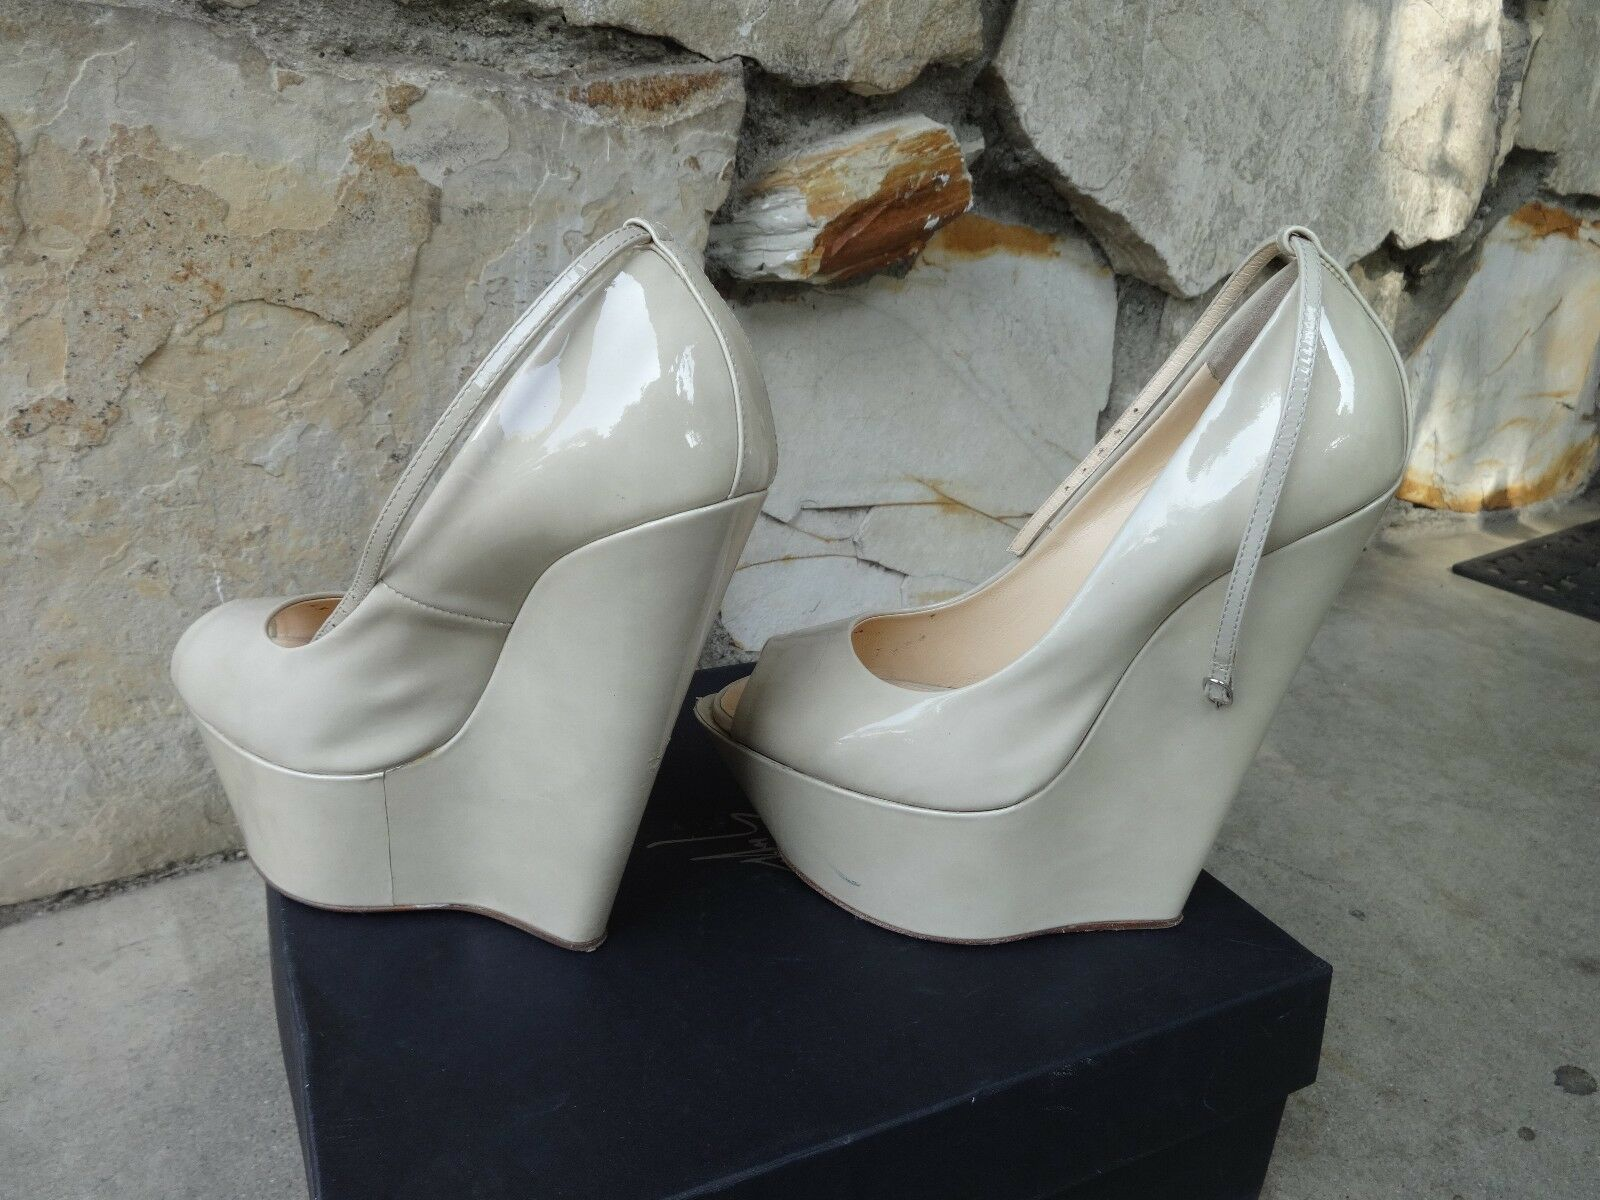 Giuseppe Zanotti Wedge Wedge Wedge Ankle Strap Platform Pumps Beige Patent EU Size 37 aef920